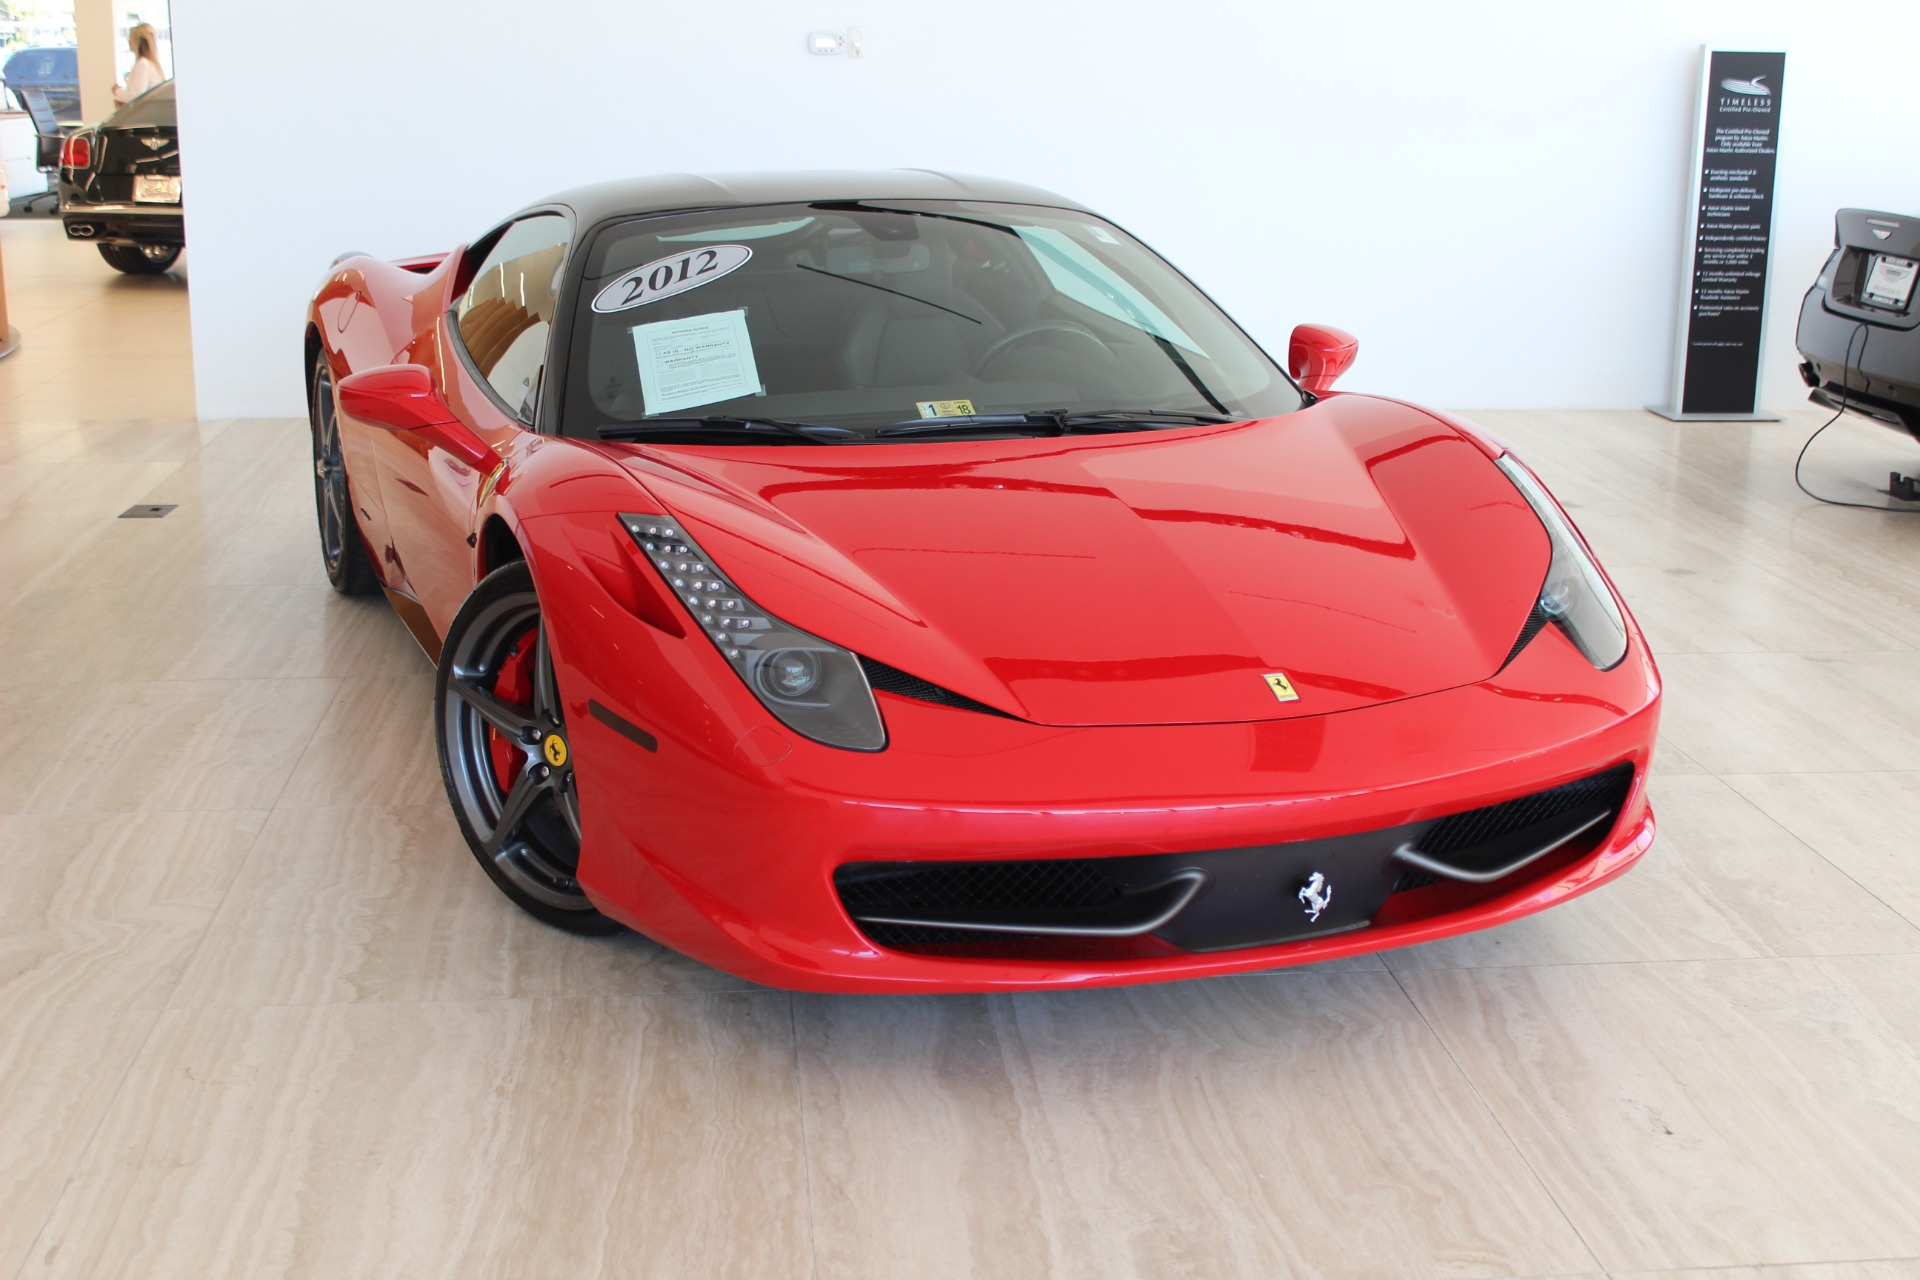 2012 Ferrari 458 Italia Stock # 7NL01699A for sale near Vienna, VA